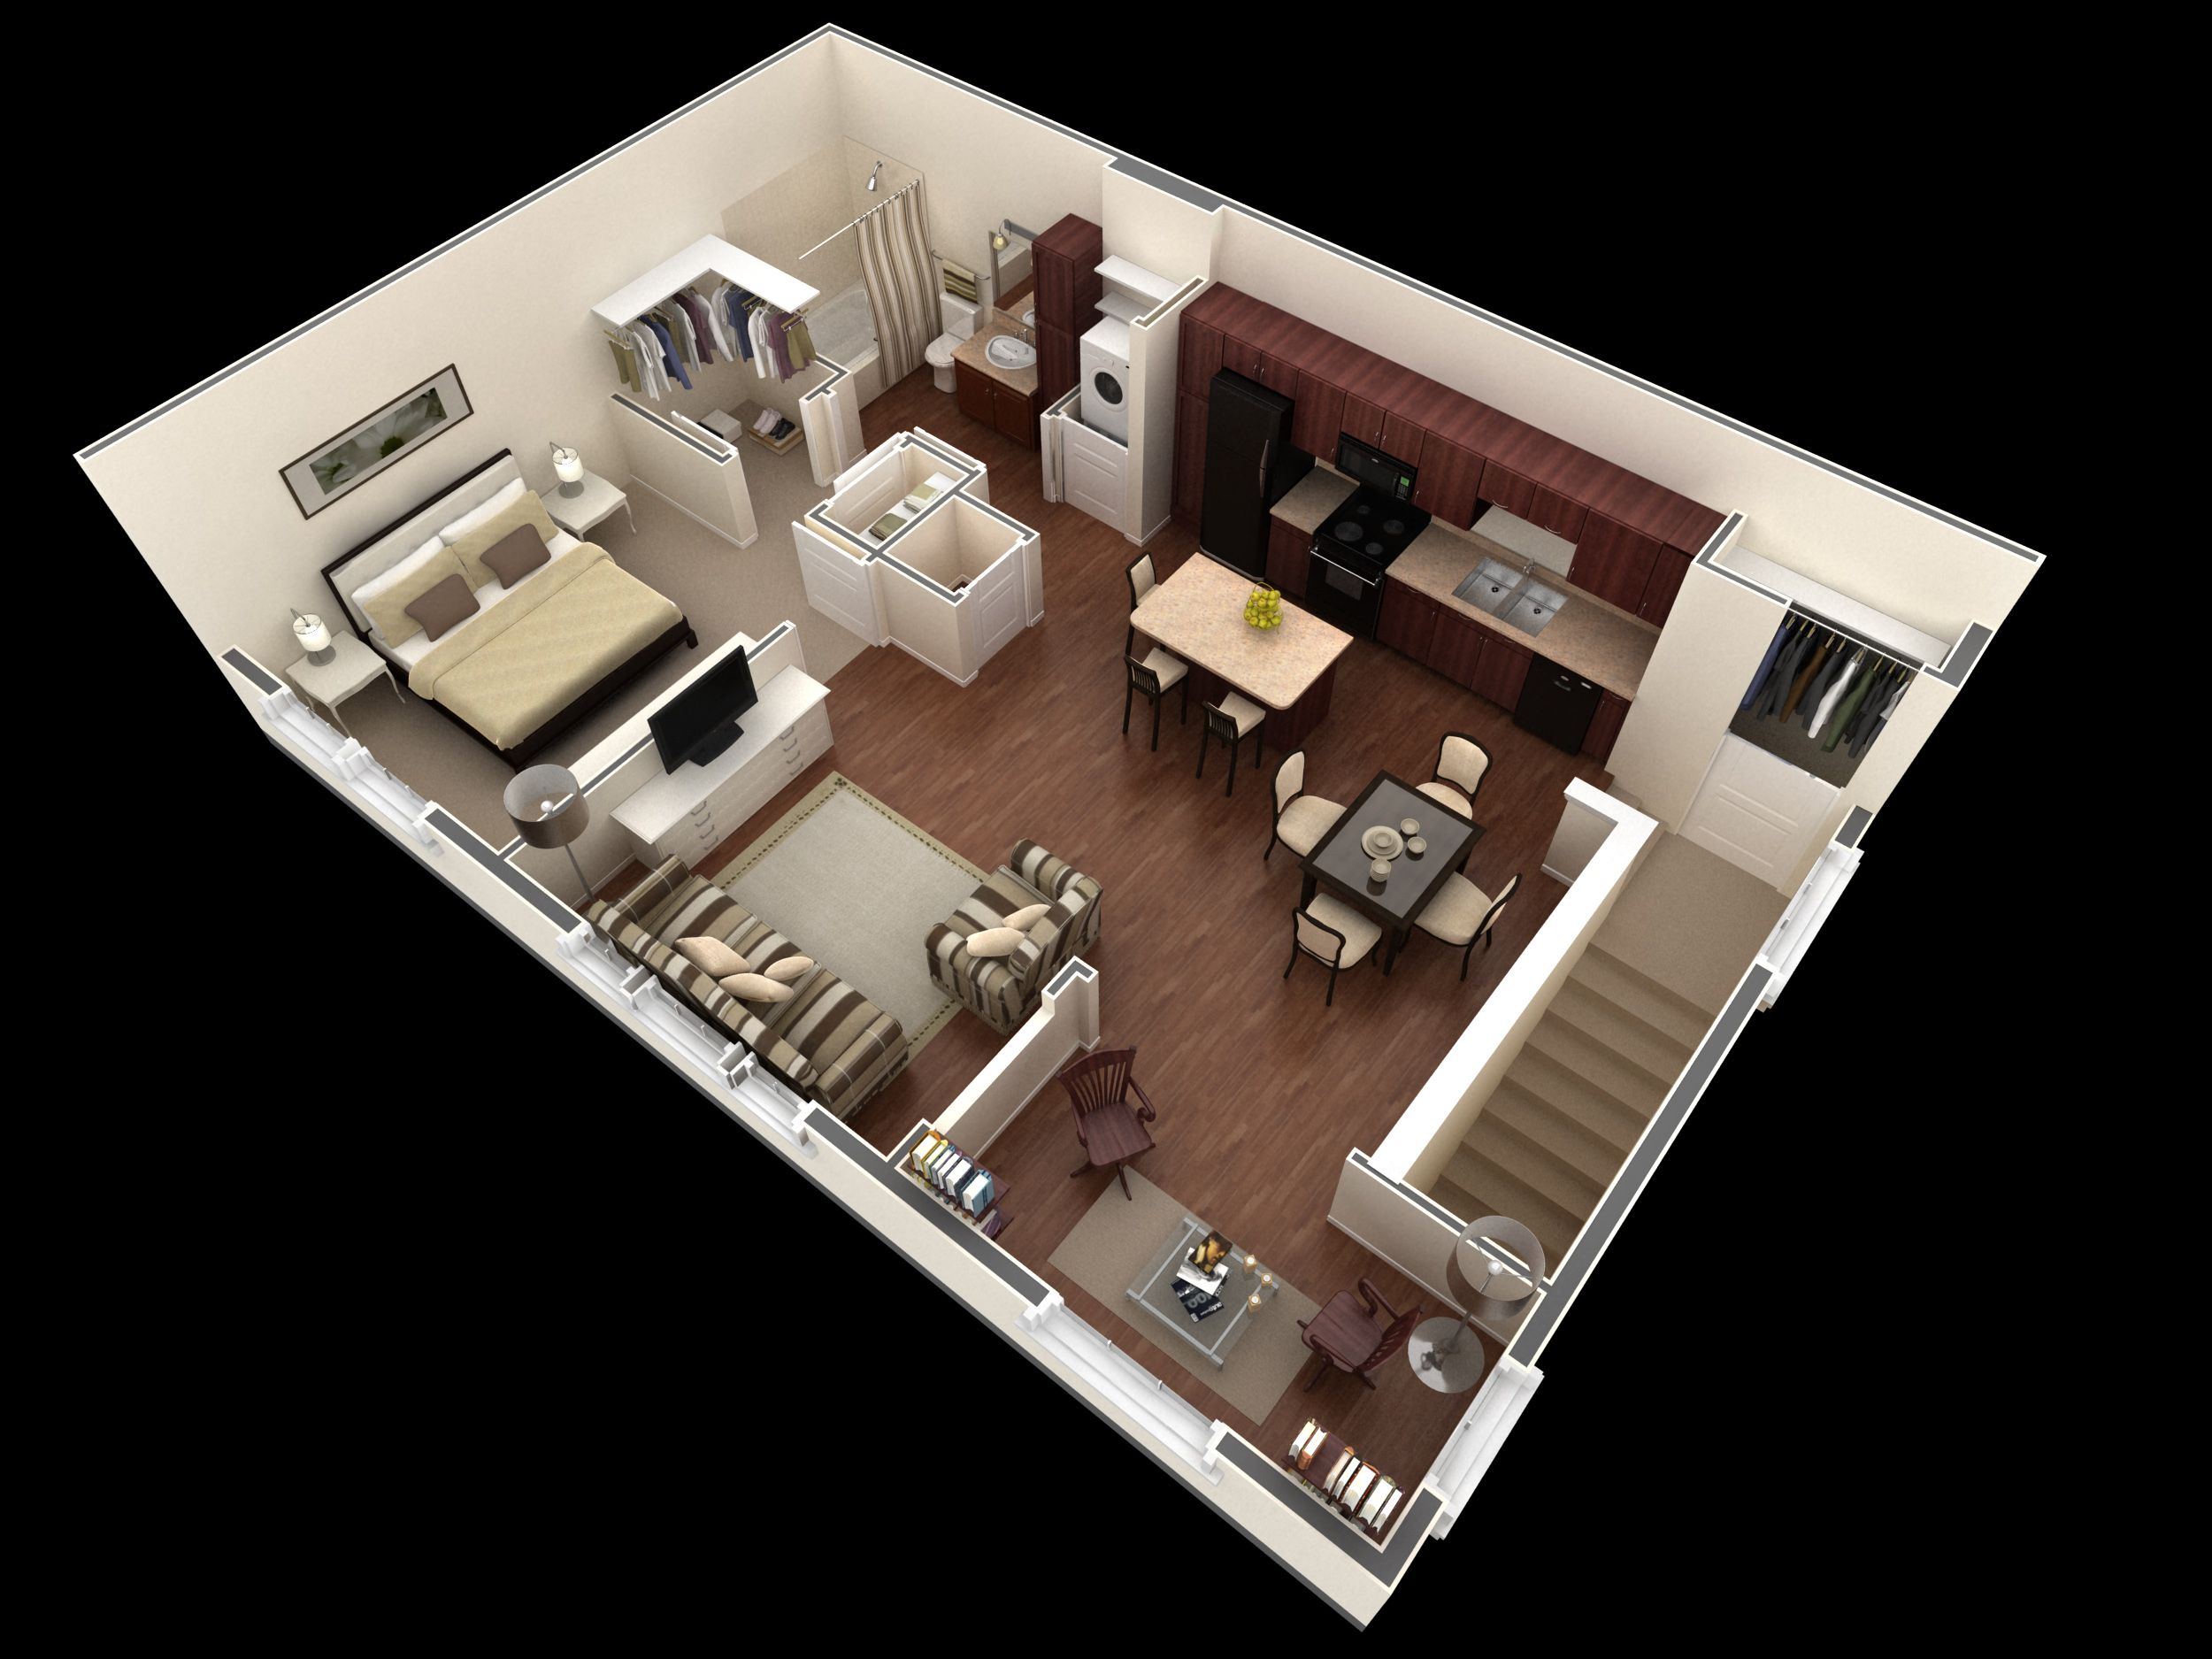 1 Bedroom 1 Bath 932 Sf Apartment At Springs At Legacy Commons In Omaha Ne This Apartment Comes With 2 Large Closet Small House Design Shop House Plans House